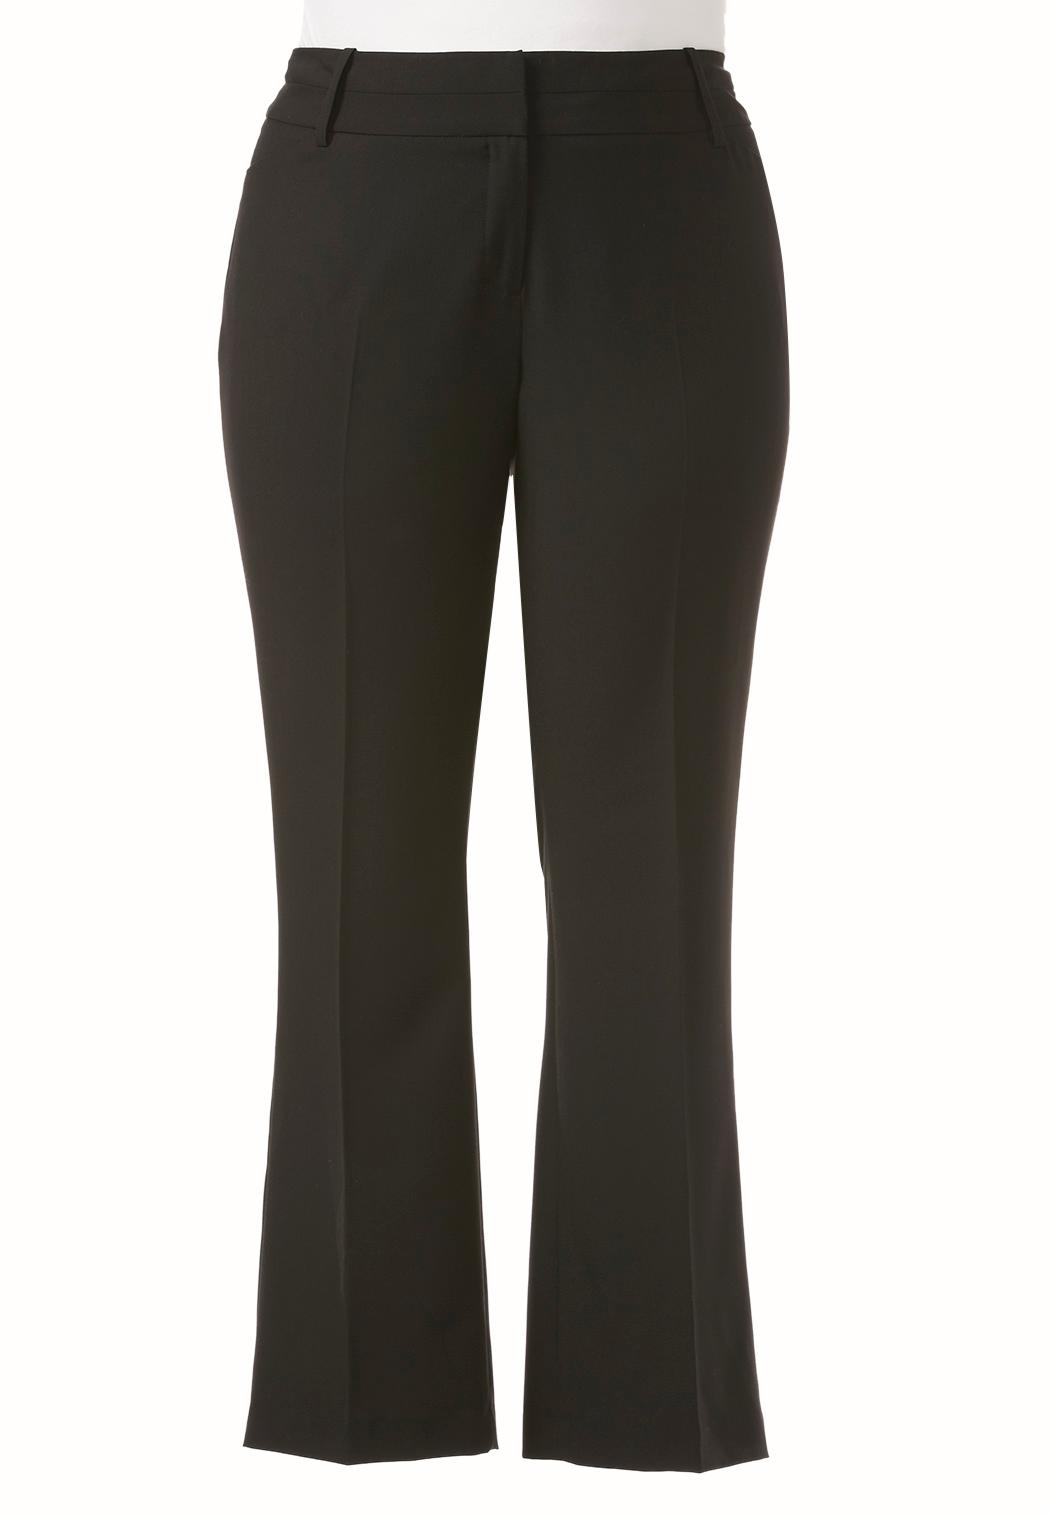 Plus Size Curvy Shape Enhancing Trousers Trouser Cato Fashions